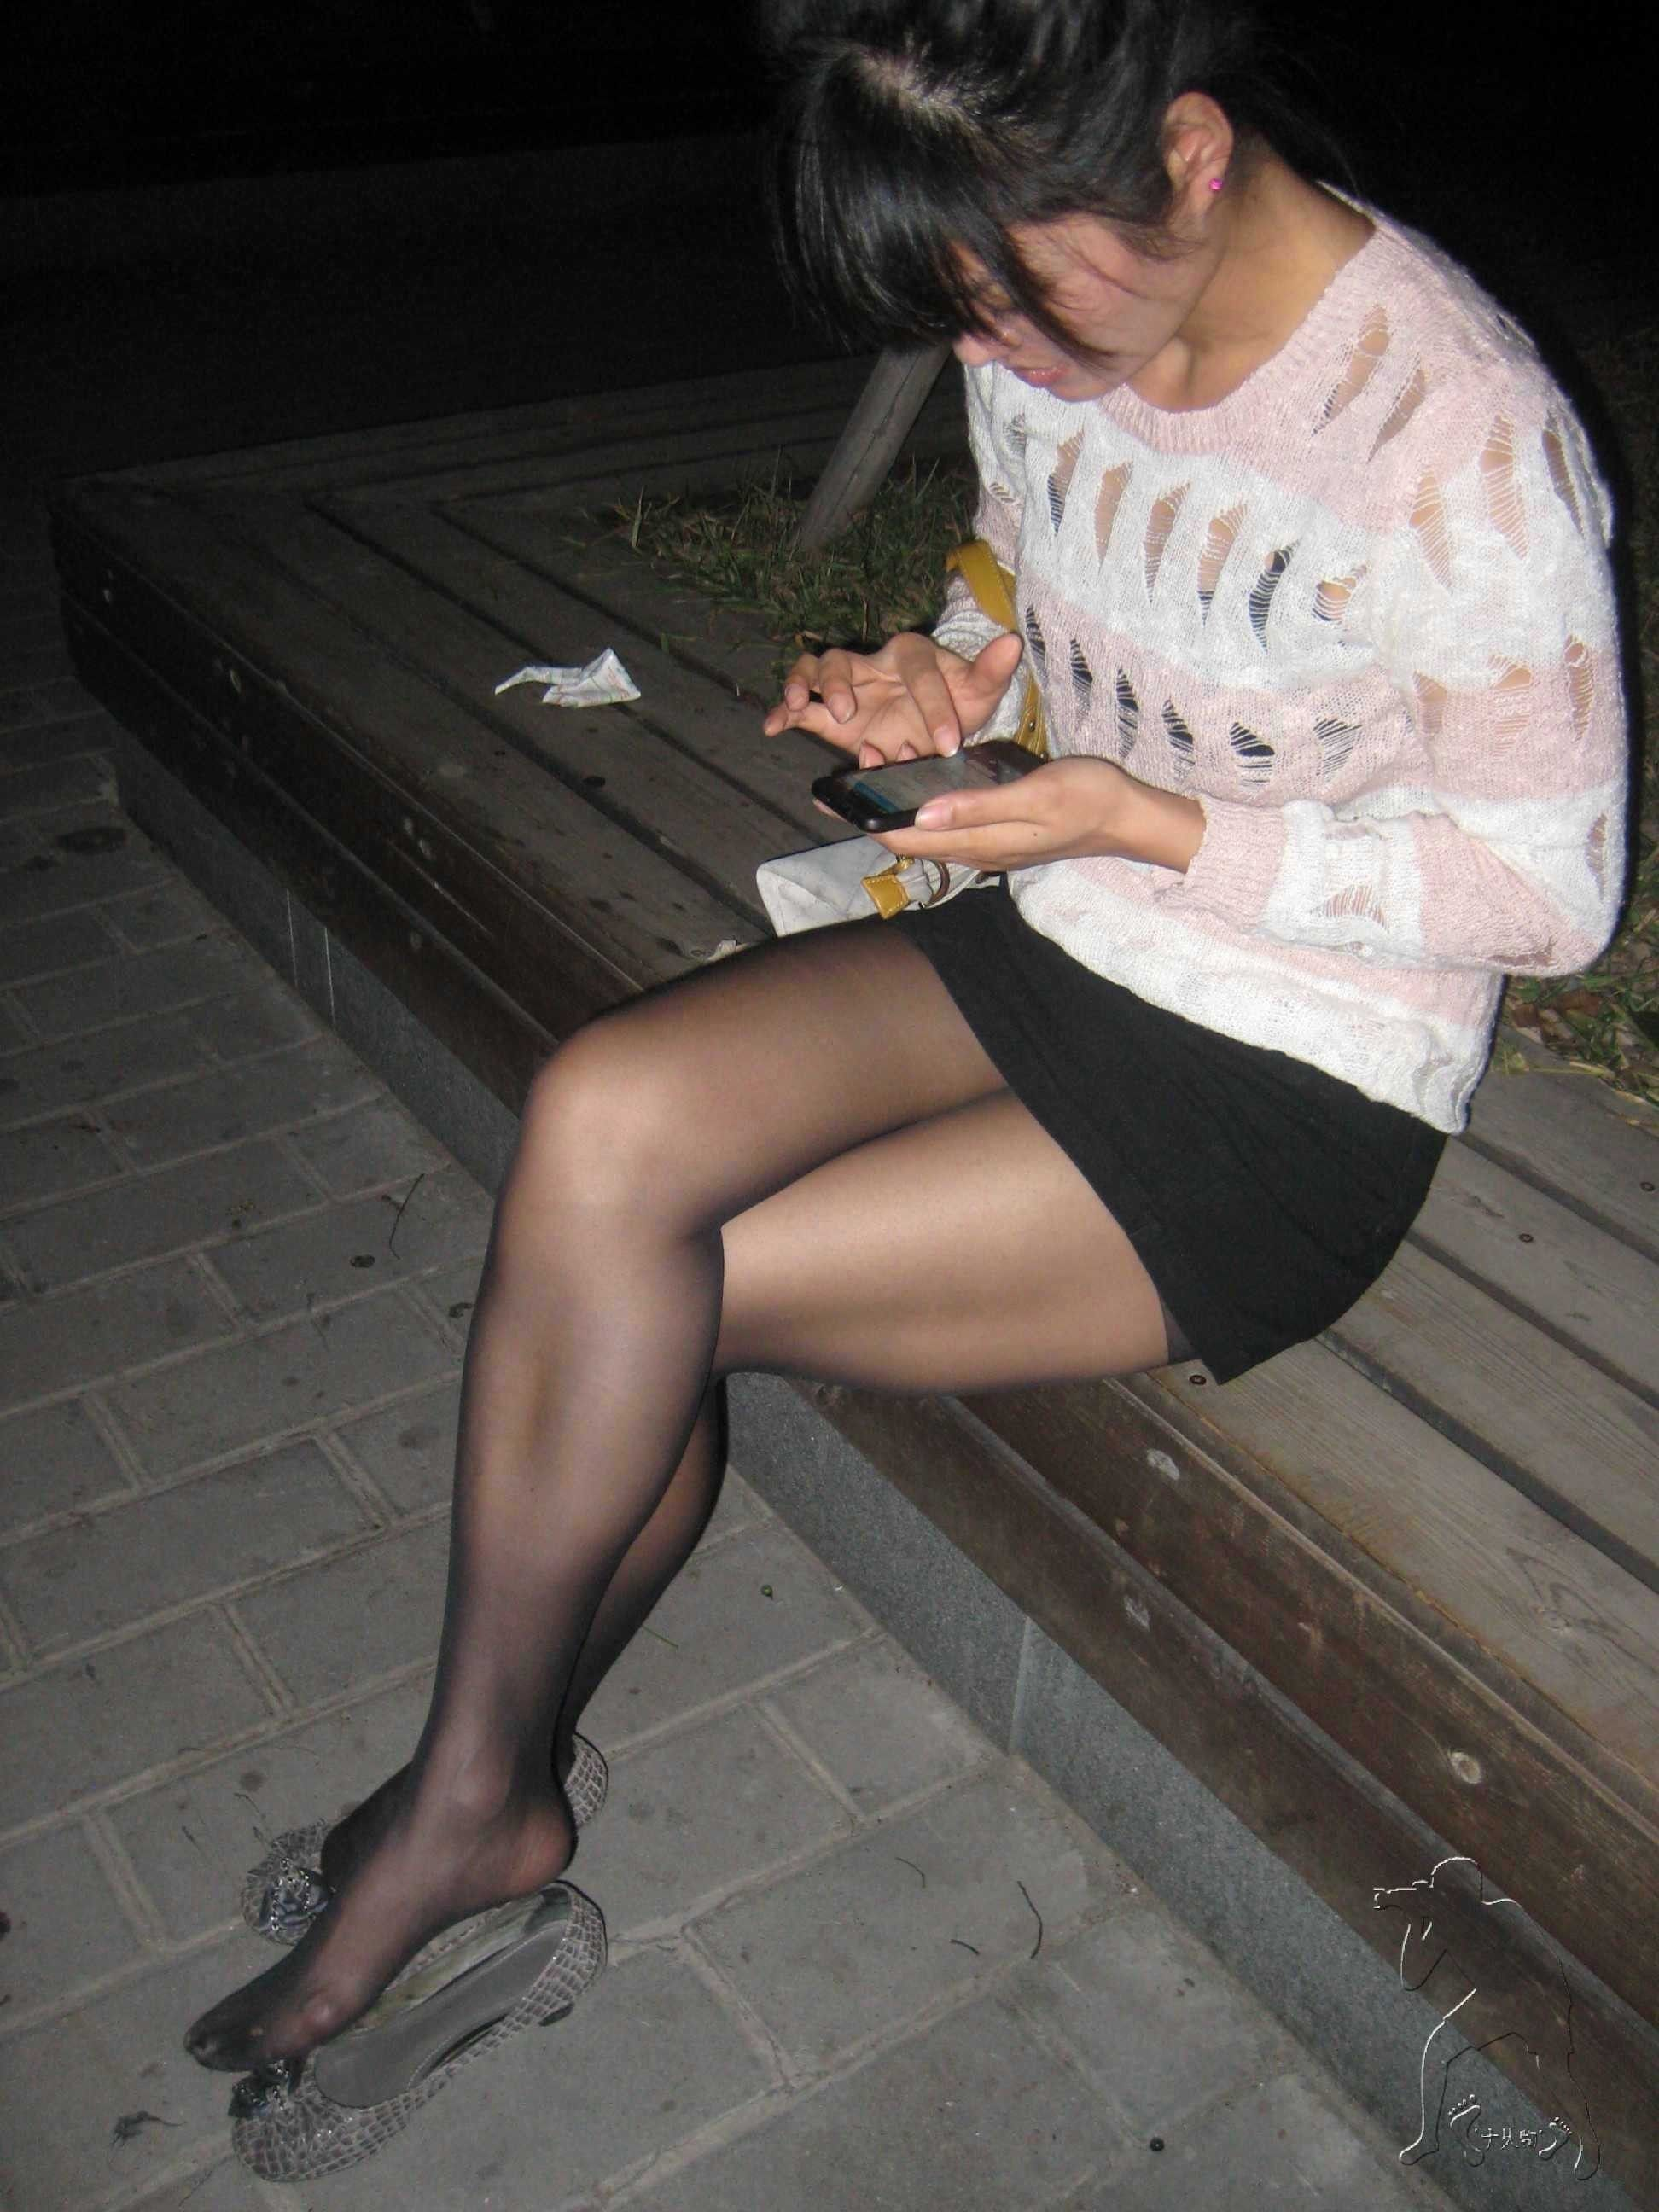 Fashion look from june 2014 featuring thigh high hosiery purple - Candid Dark Haired Babe Wearing Black Pantyhose Sitting With Her Legs Crossed Showing Her Lush Nylon Feet Girls With Legs